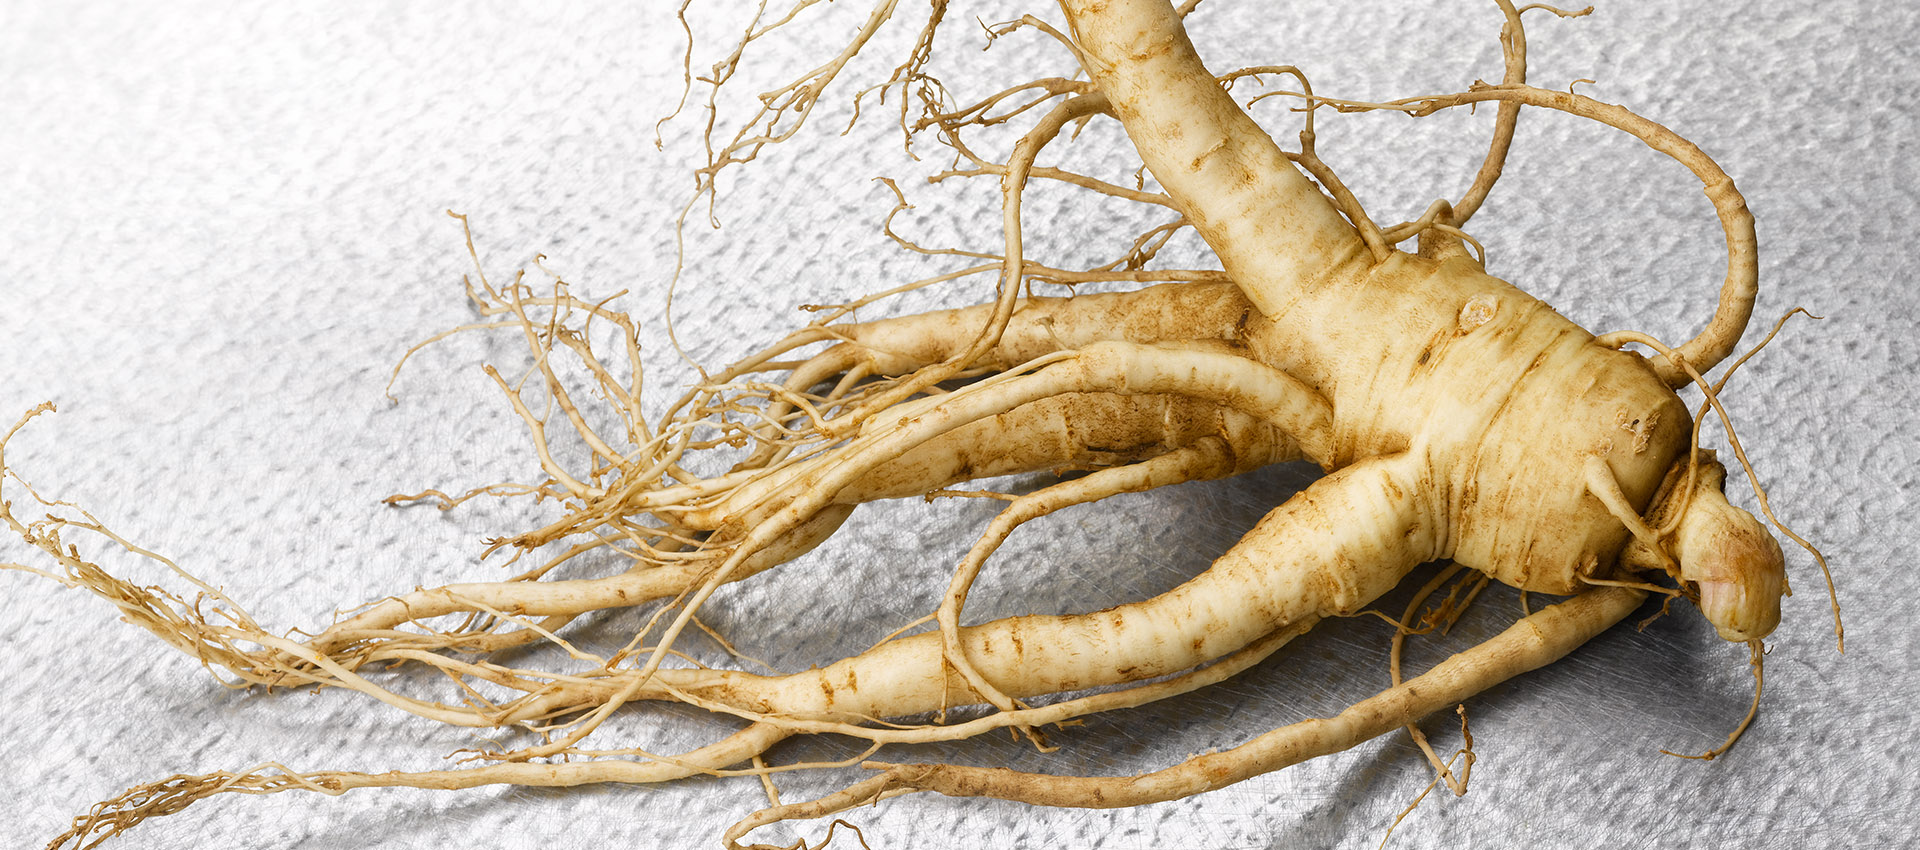 wisconsin ginseng roots